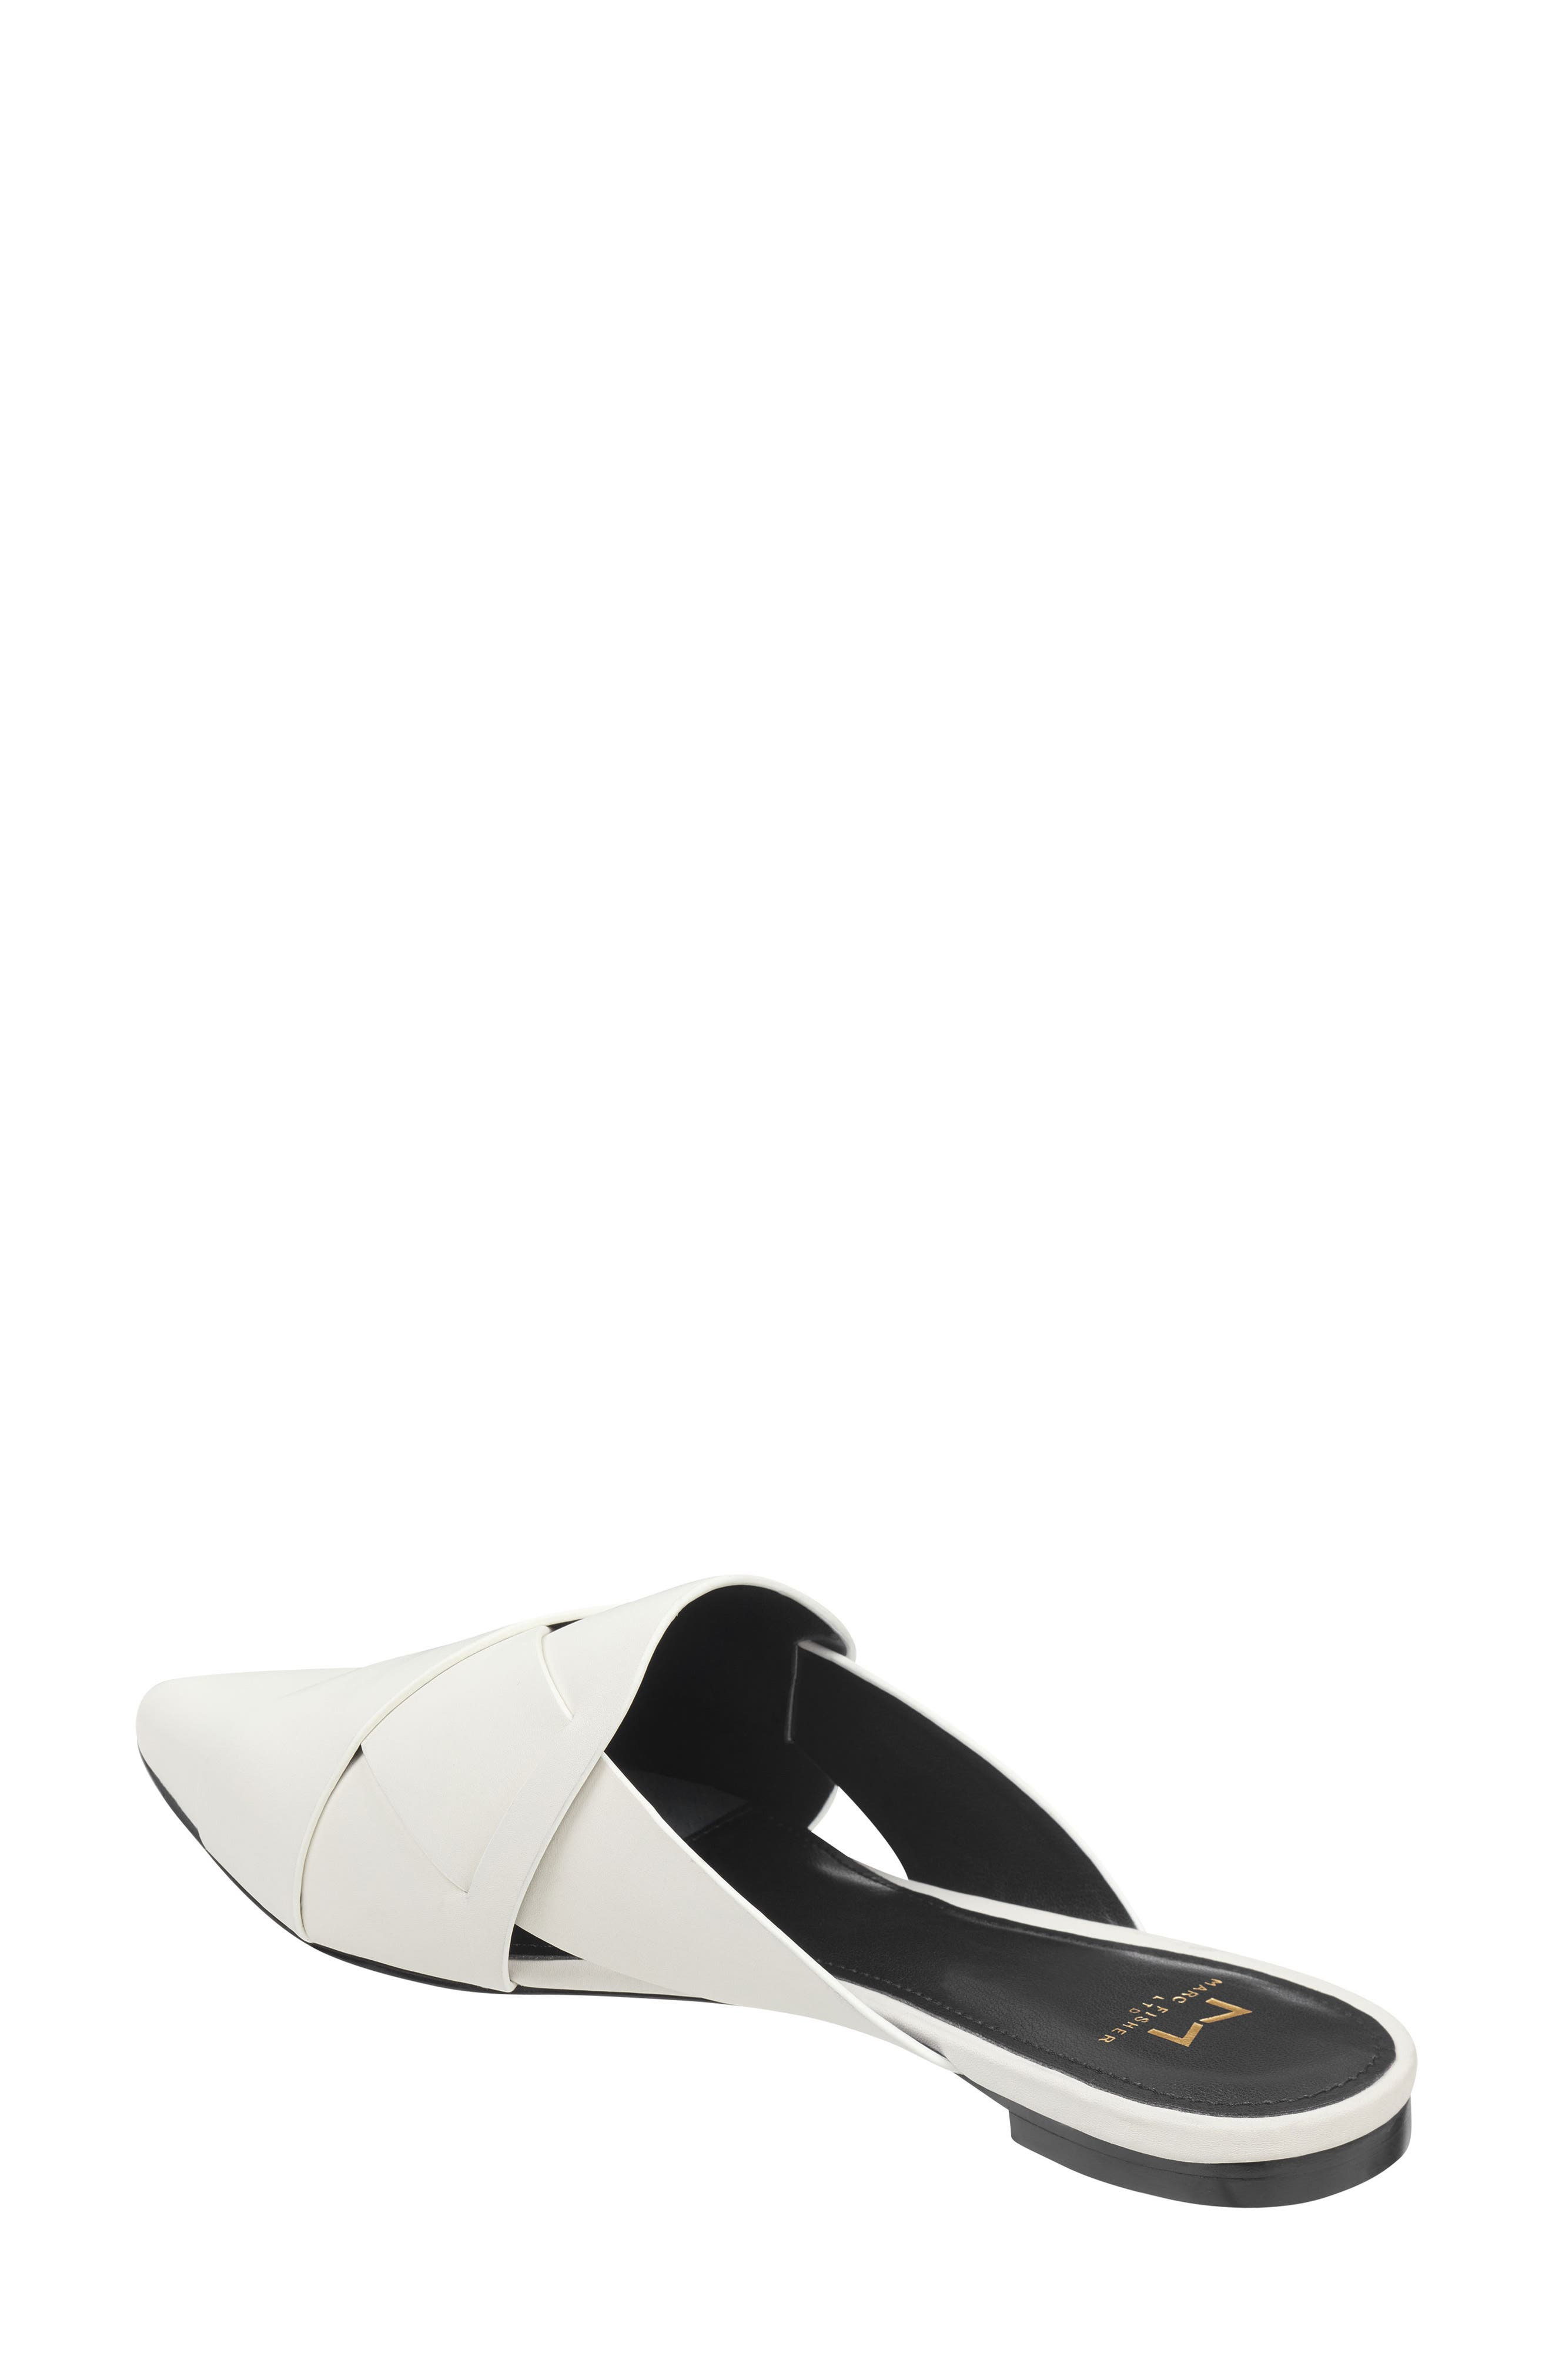 Sono Pointy Toe Mule,                             Alternate thumbnail 2, color,                             CHIC CREAM LEATHER